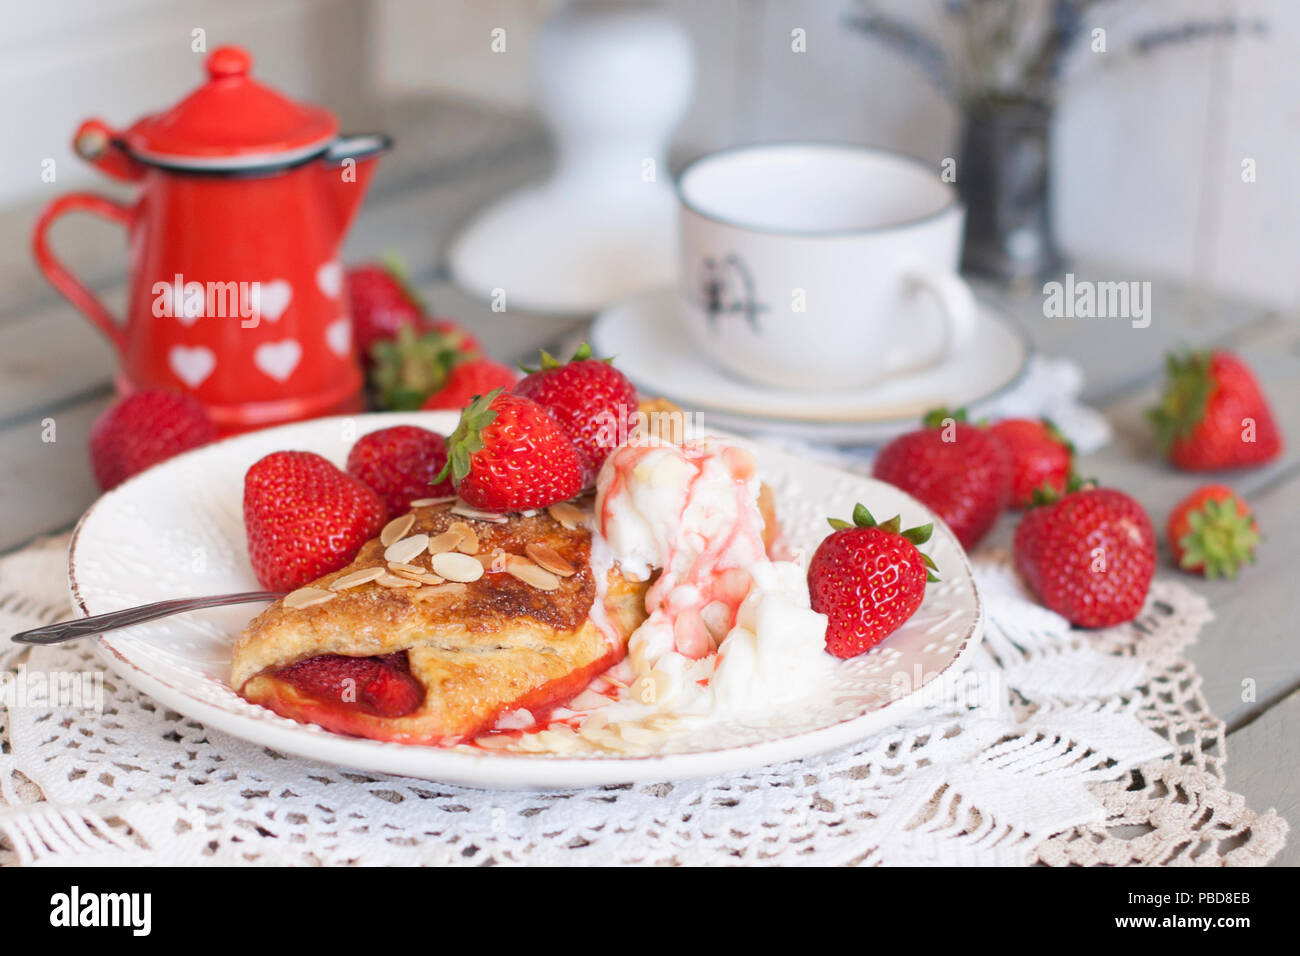 Sweet homemade pastries for breakfast. With strawberry filling and ice cream. Morning coffee. Red jug with milk. milkman. A cup of tea. family breakfast. Photo in white colors - Stock Image